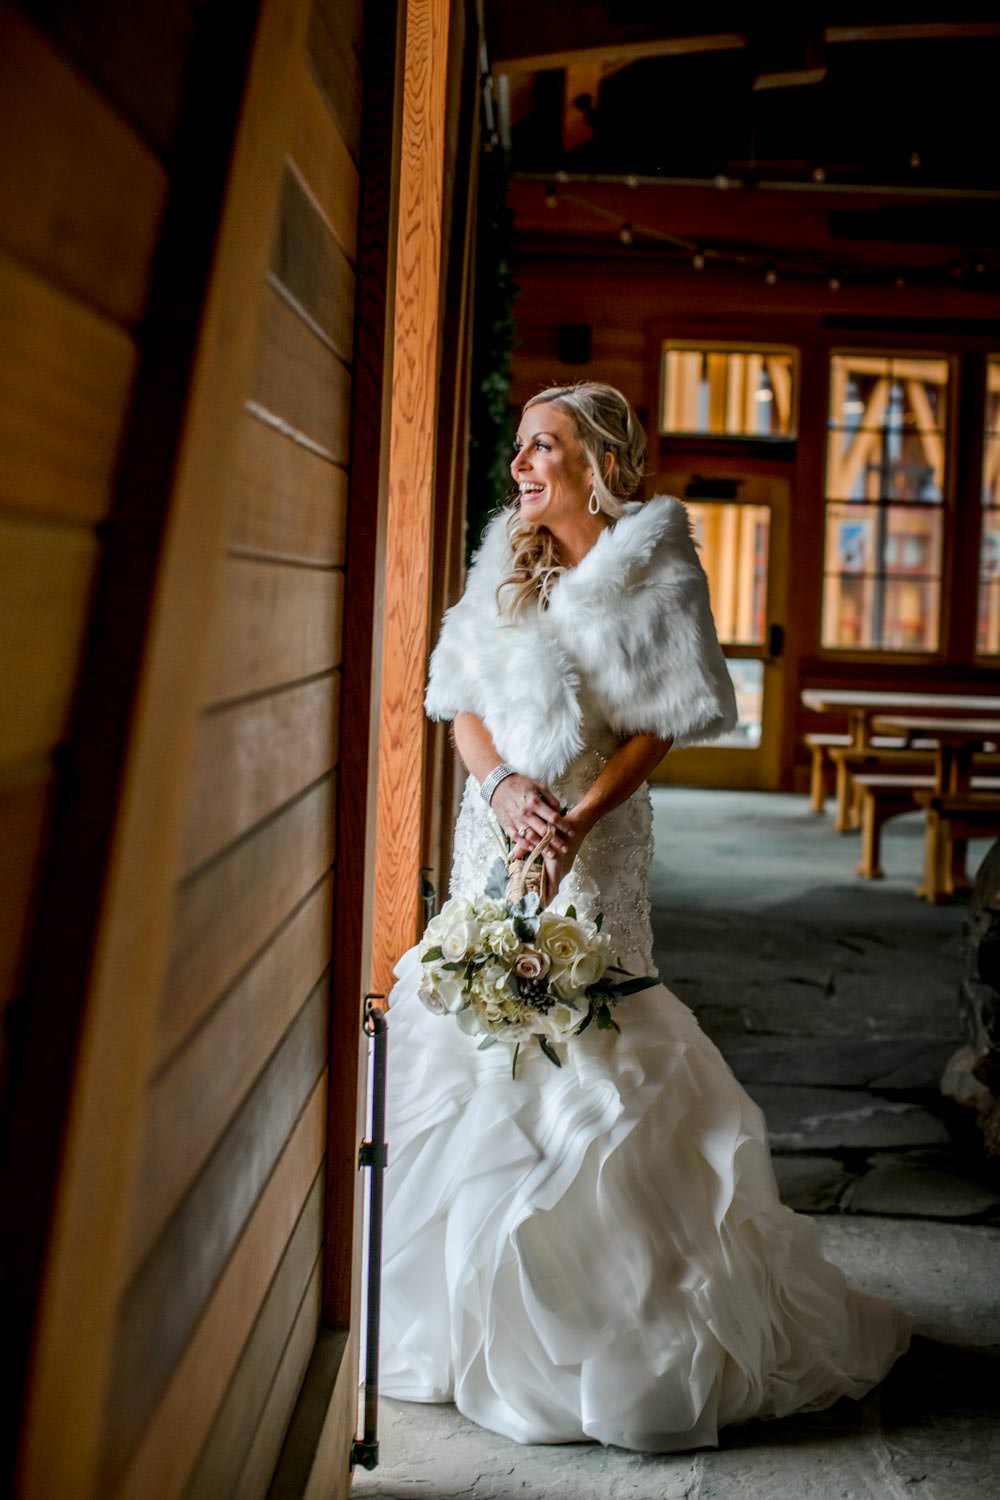 bride stands in doorway of warming lodge at Stowe Mountain resort after her wedding